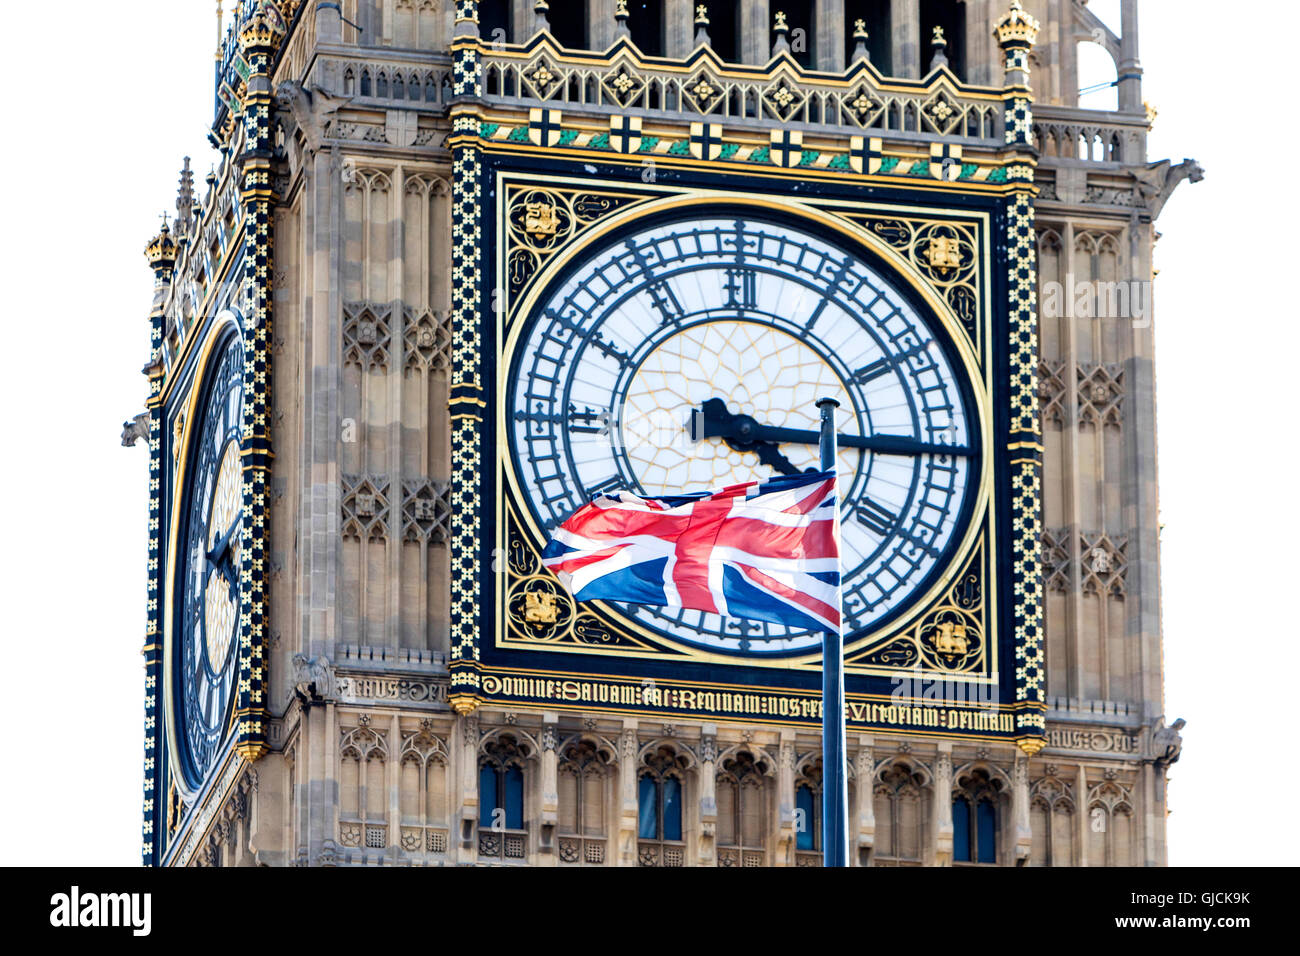 Close up of Big Ben Elizabeth Tower and the  Houses of Parliament Clock Tower of The Palace of Westminster, London, - Stock Image